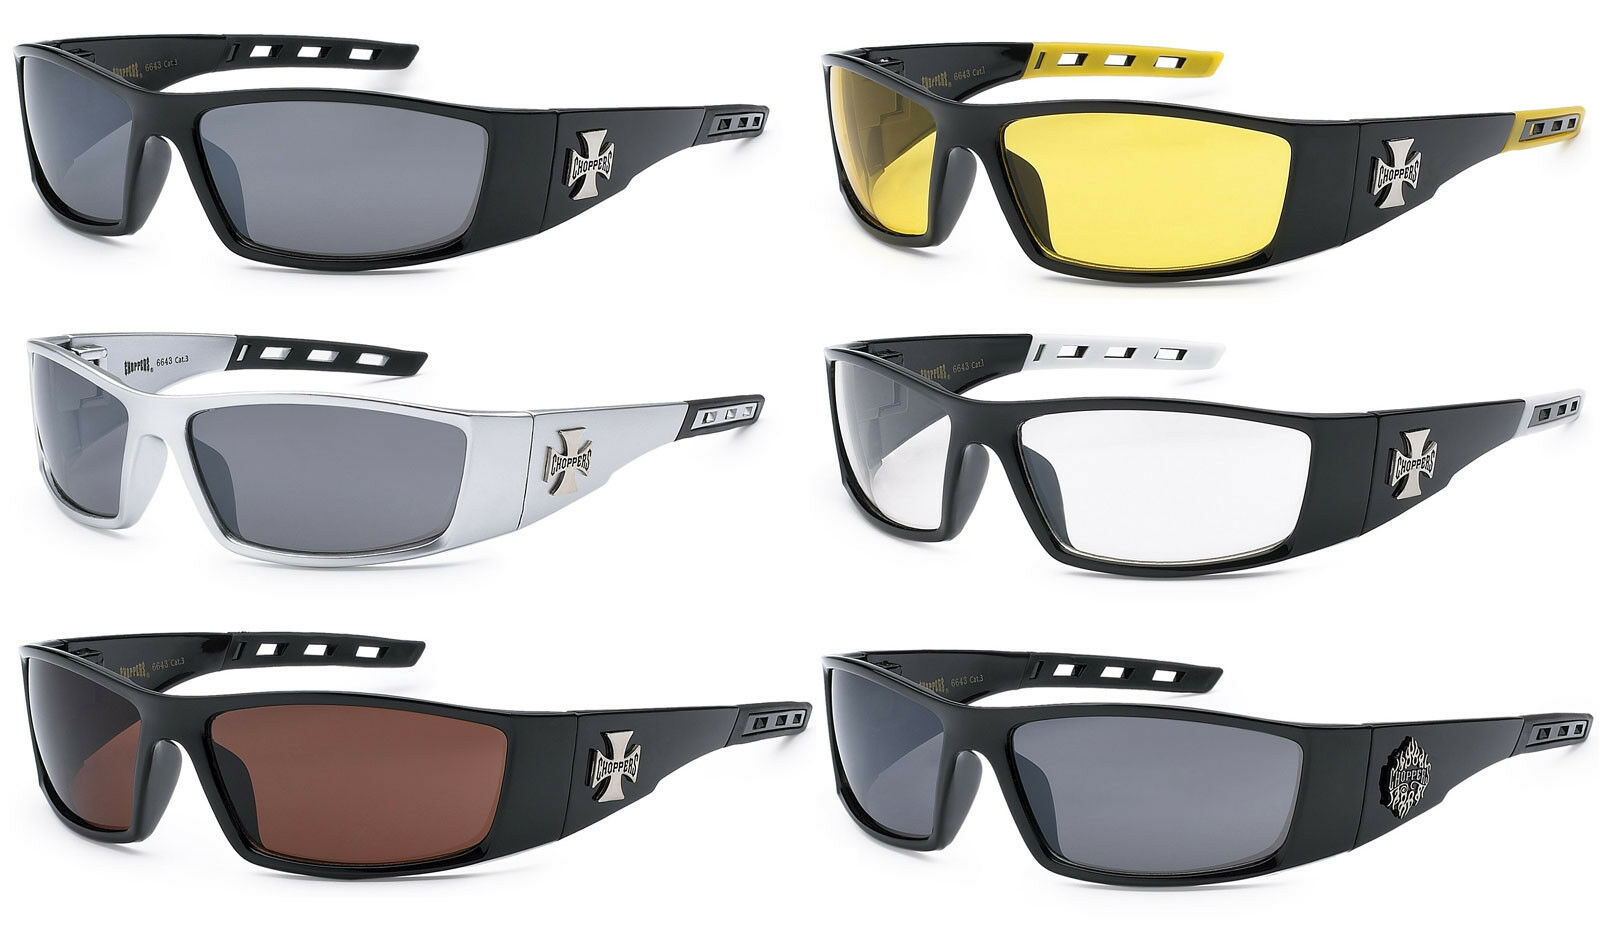 9c7a9da297f31 Choppers Sunglasses Motorcycle Riding Glasses Wrap Around 7 colors ...